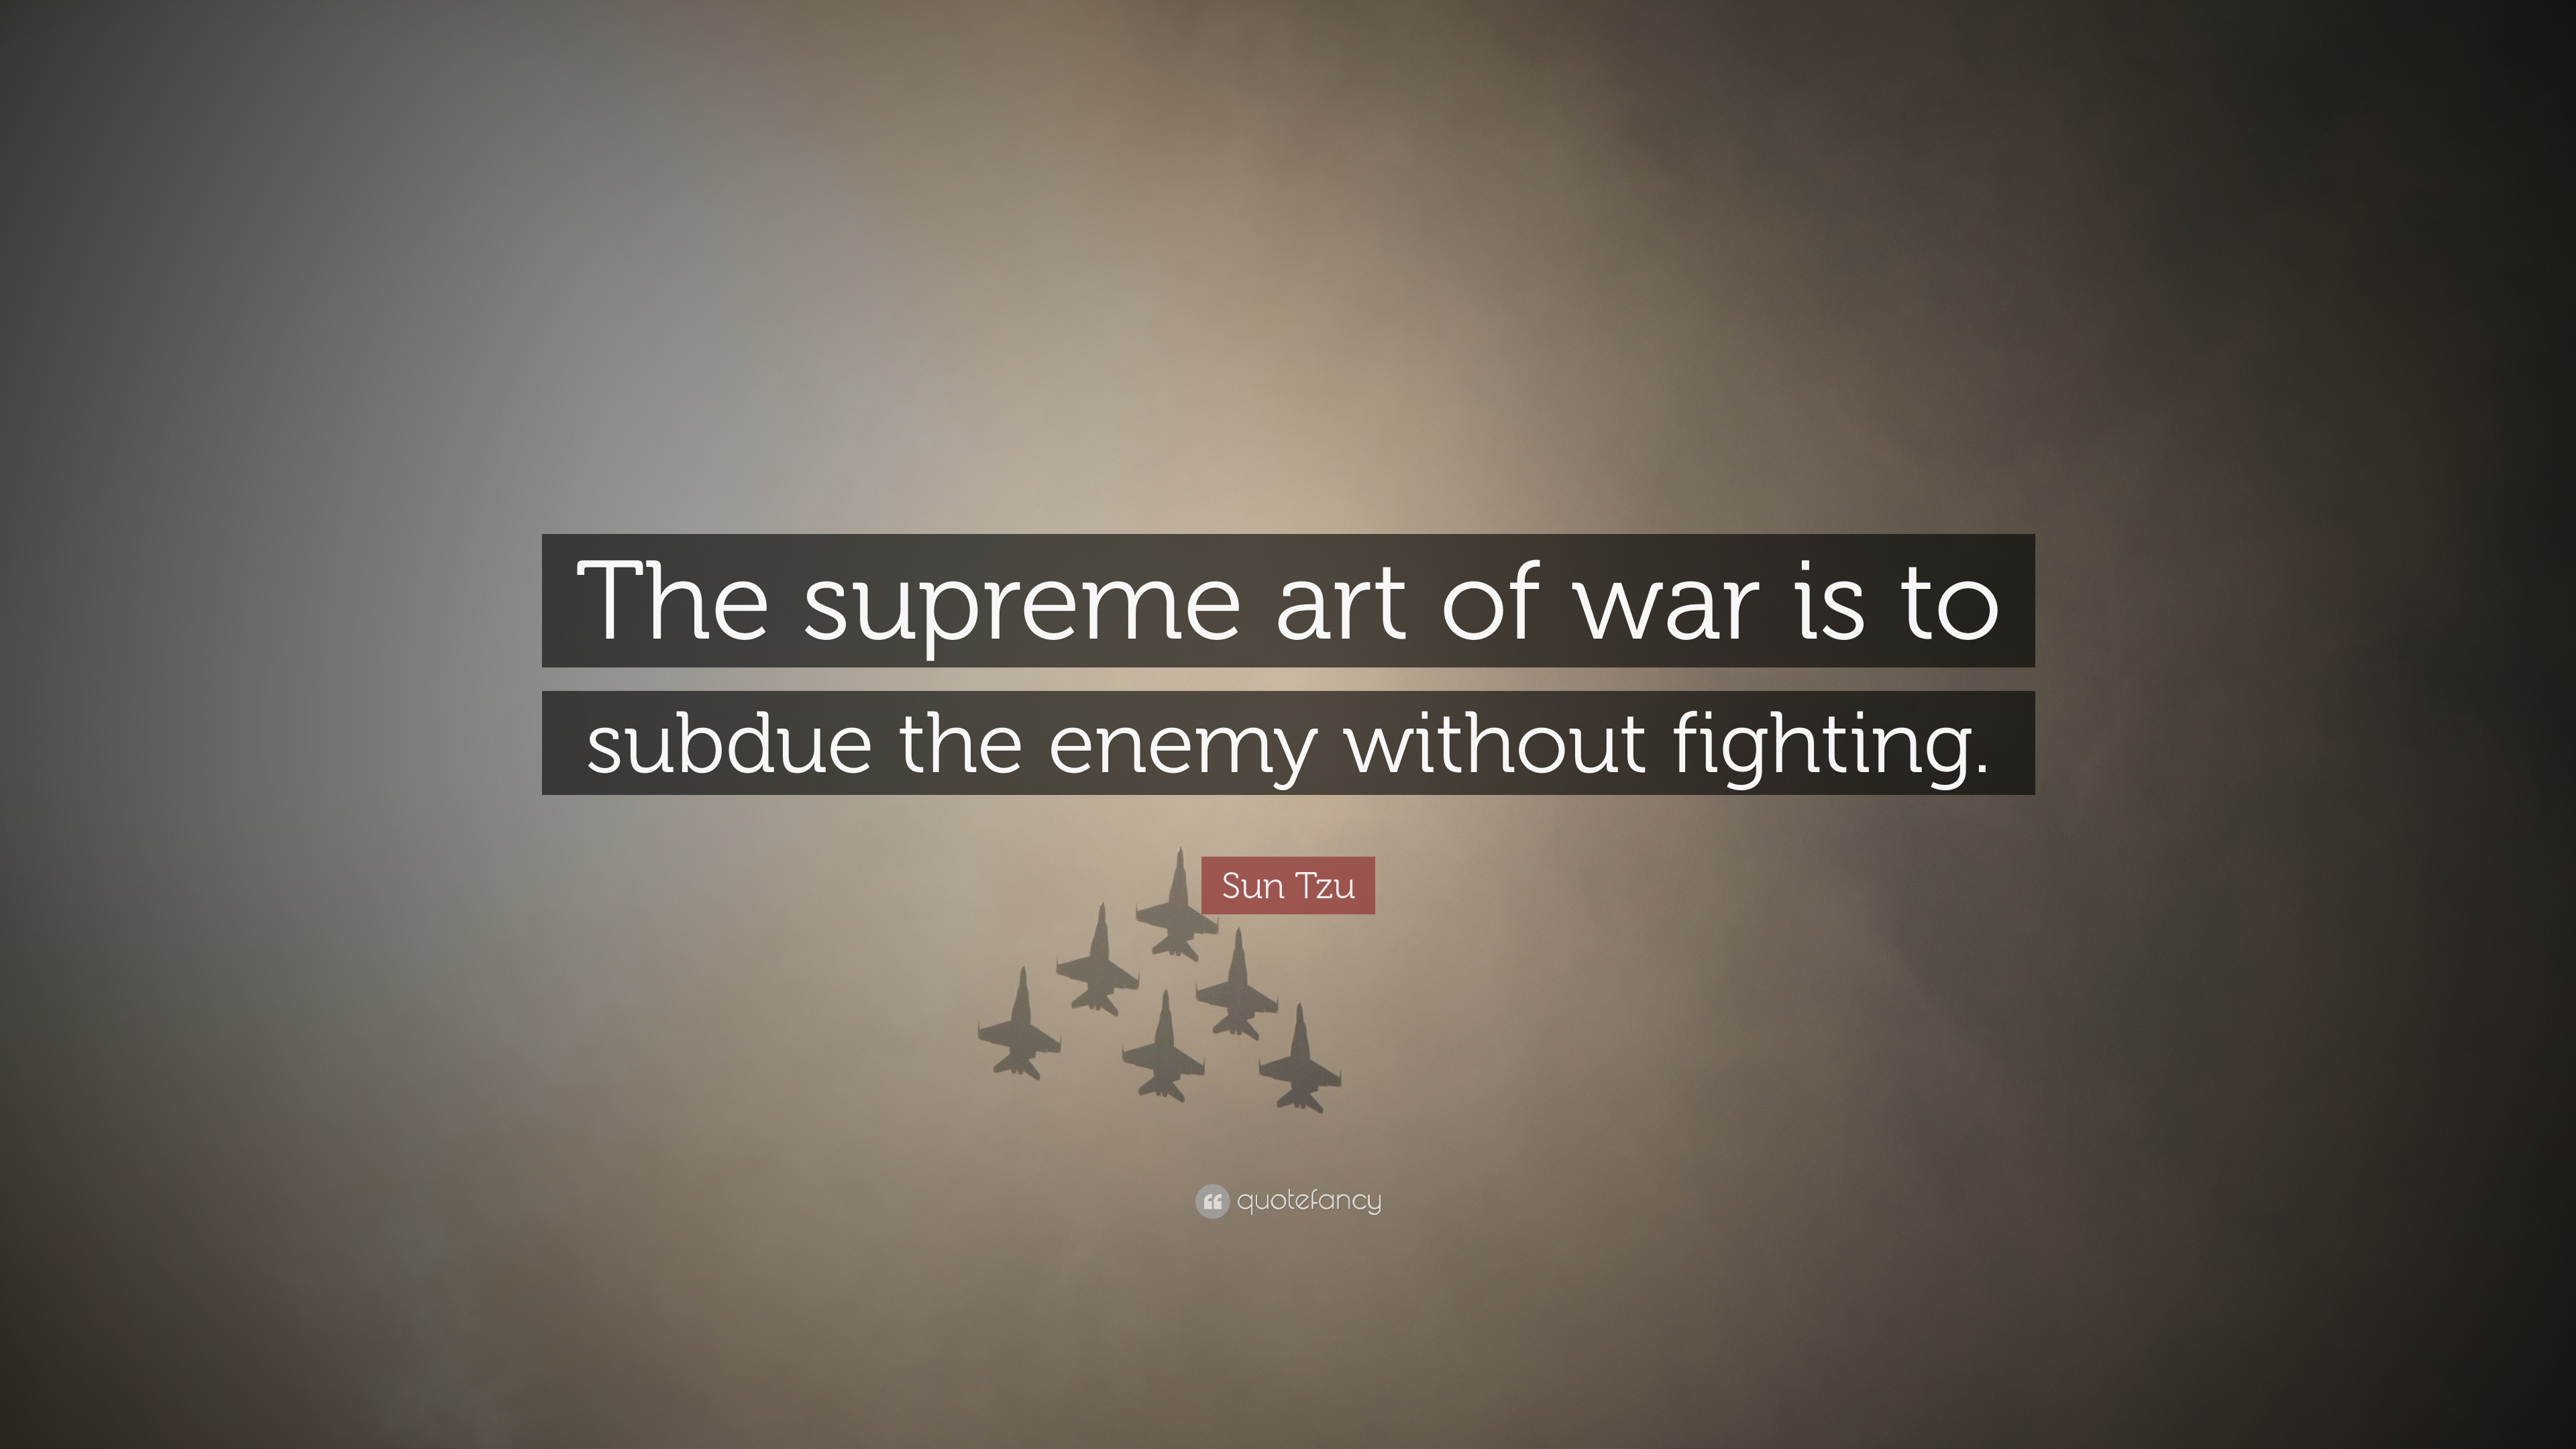 Motivational Wallpapers Without Quotes Sun Tzu Quote The Supreme Art Of War Is To Subdue The